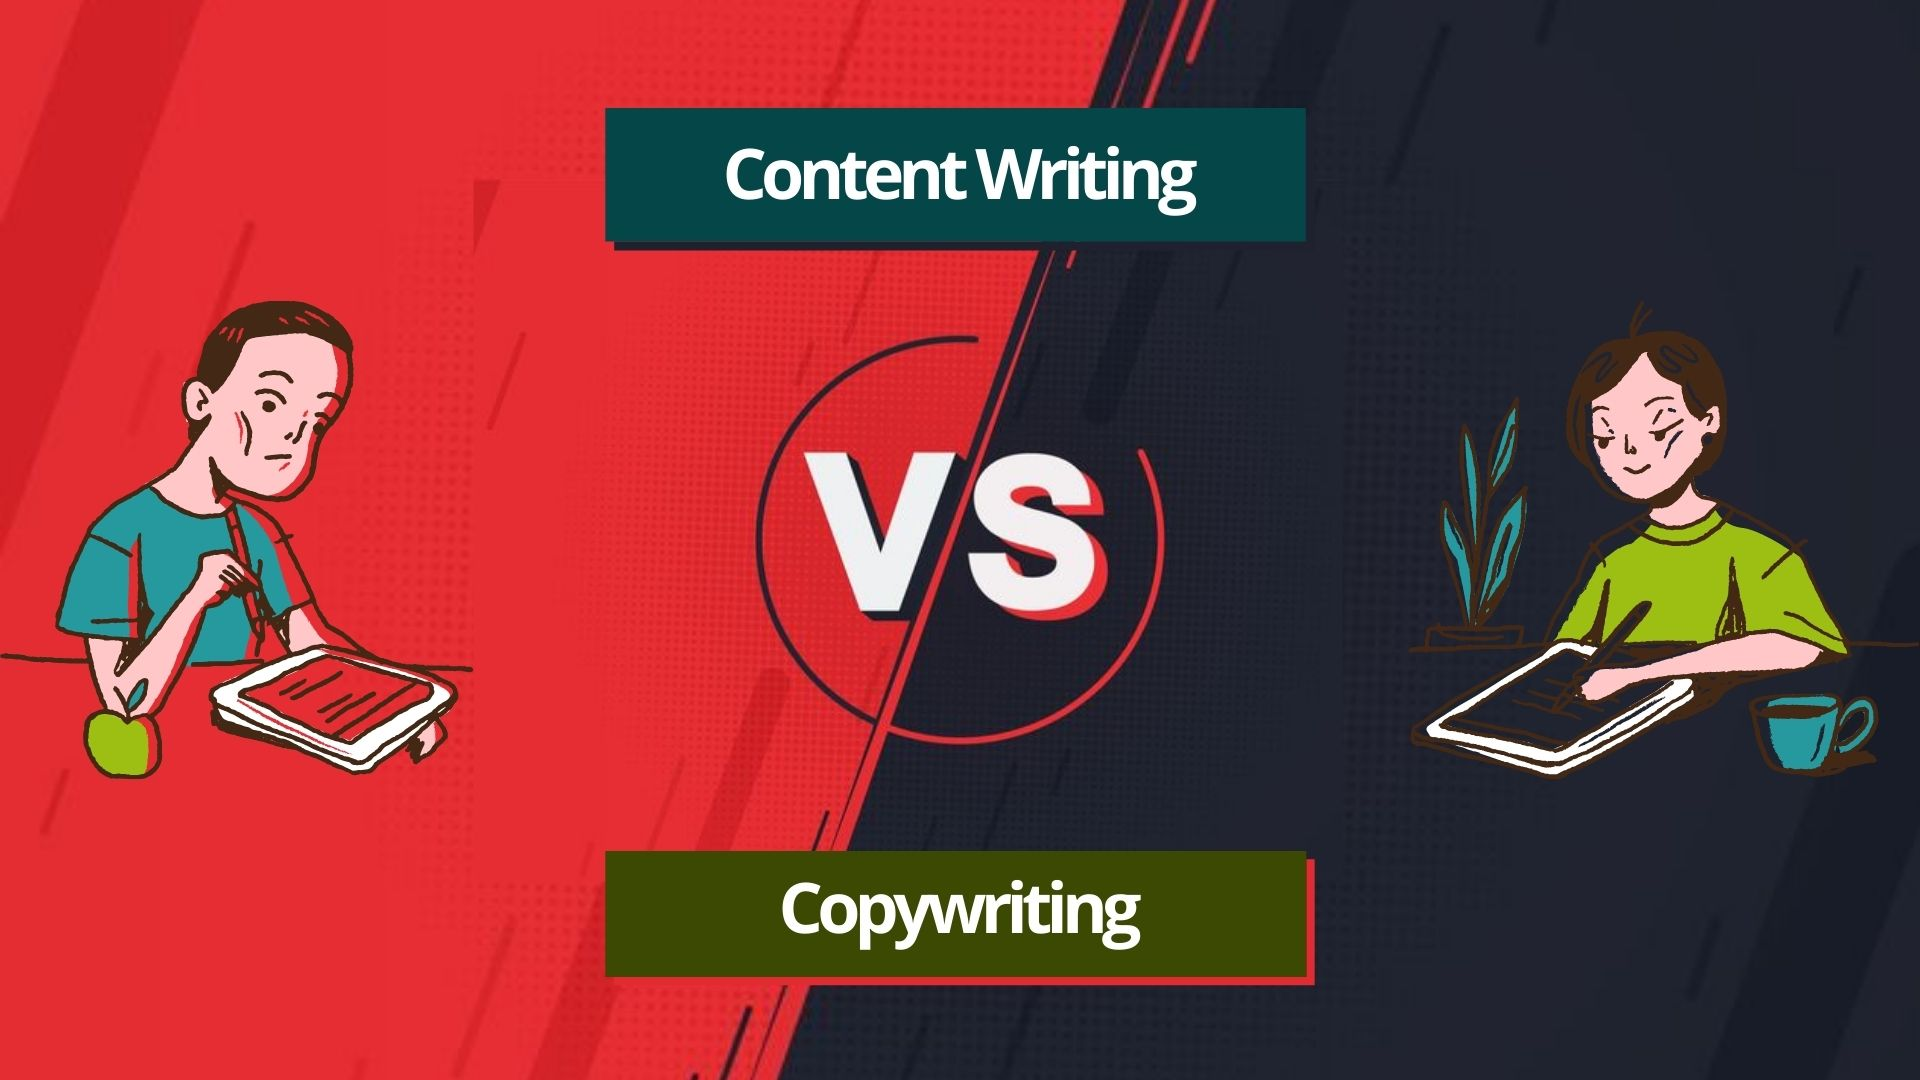 The difference between Content Writing vs. Copywriting